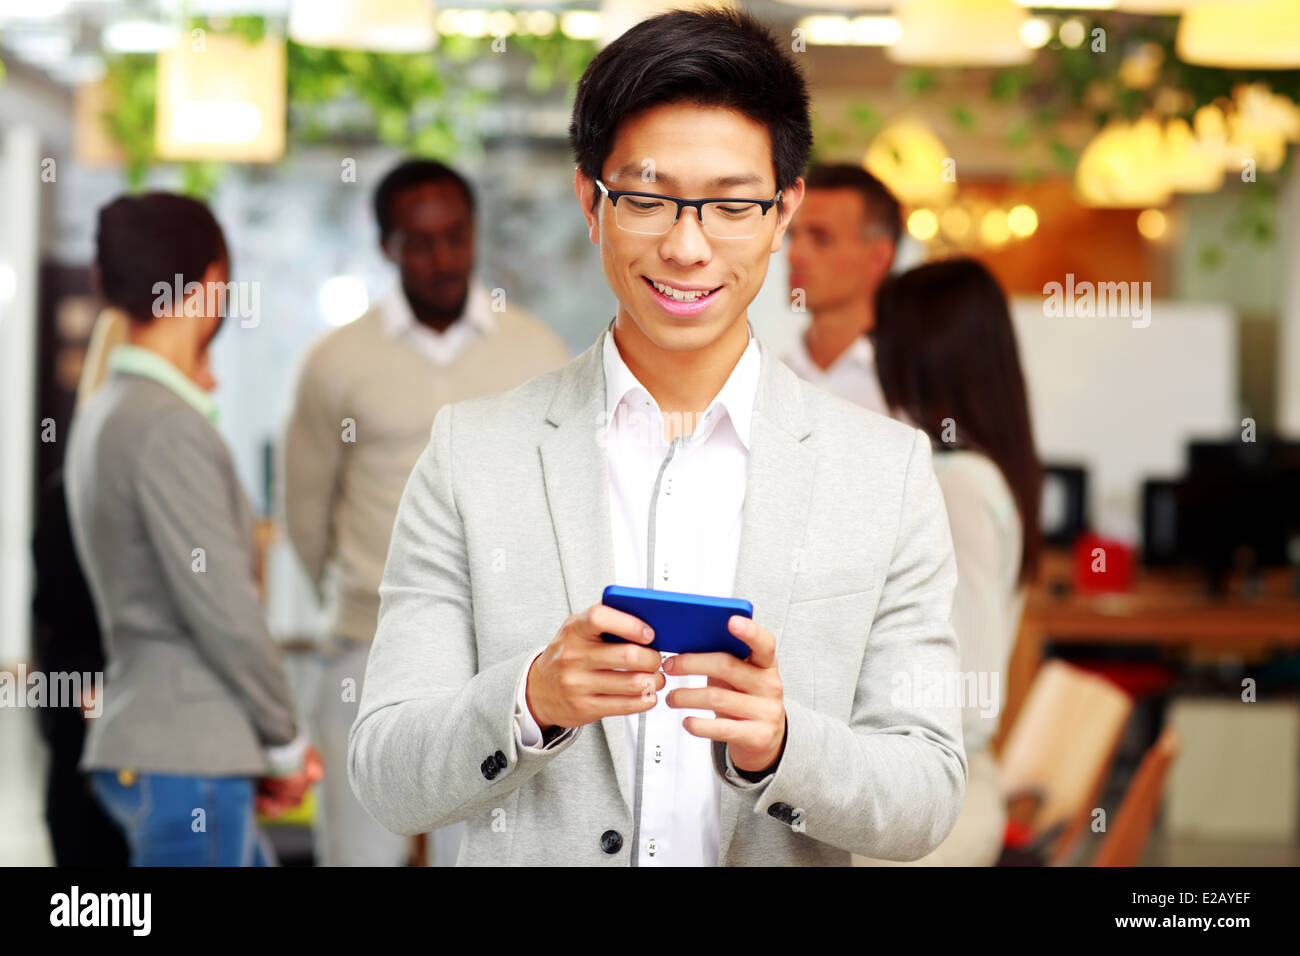 Portrait of a happy businessman using smartphone in front of colleagues - Stock Image